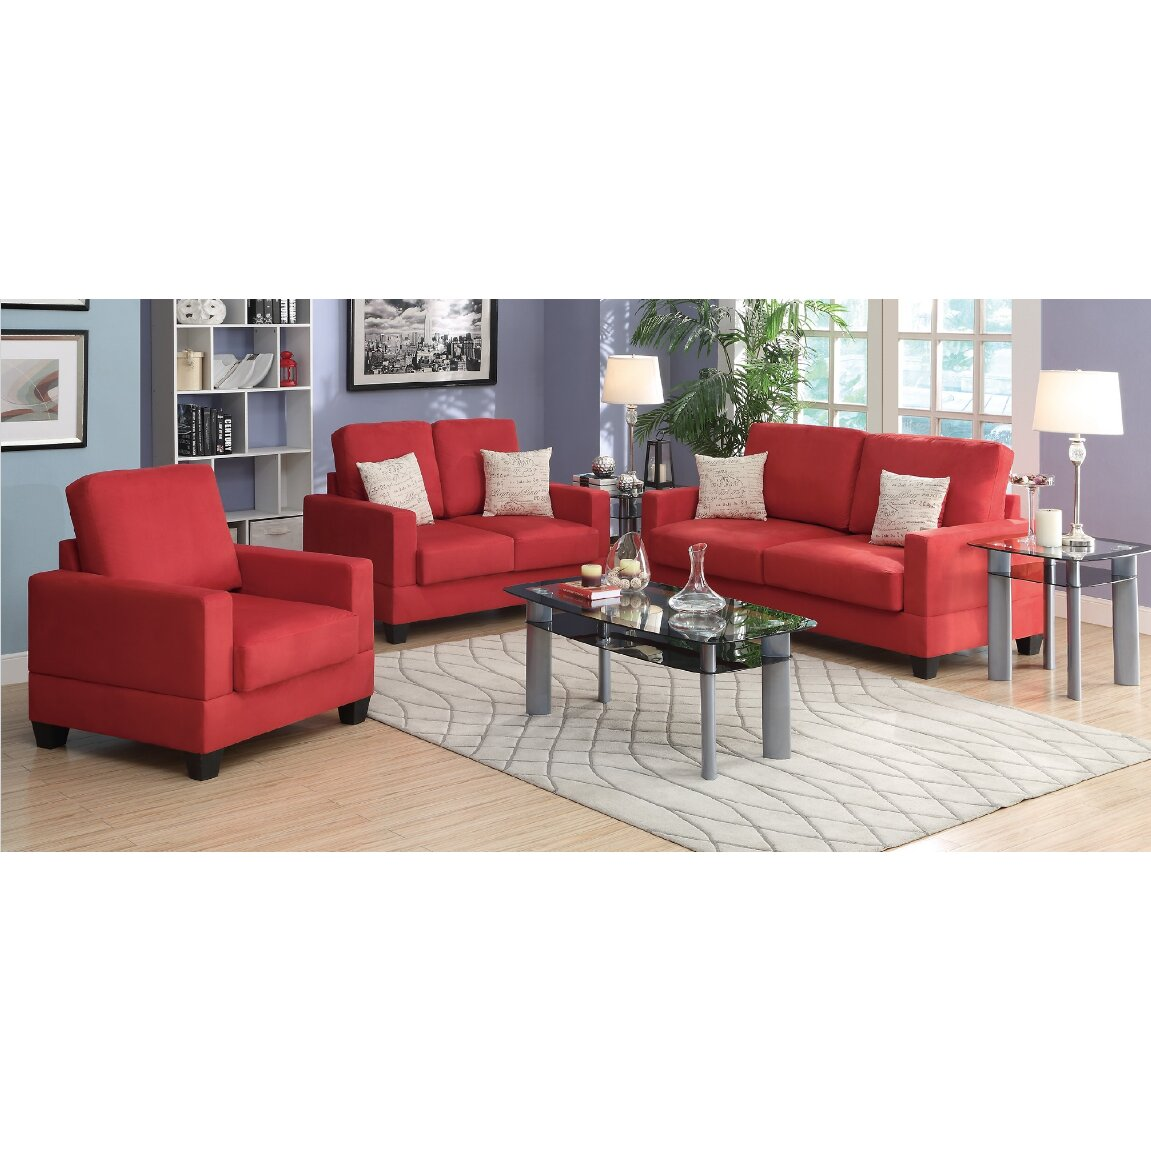 A j homes studio pandora 3 piece living room set wayfair for 3 piece living room set